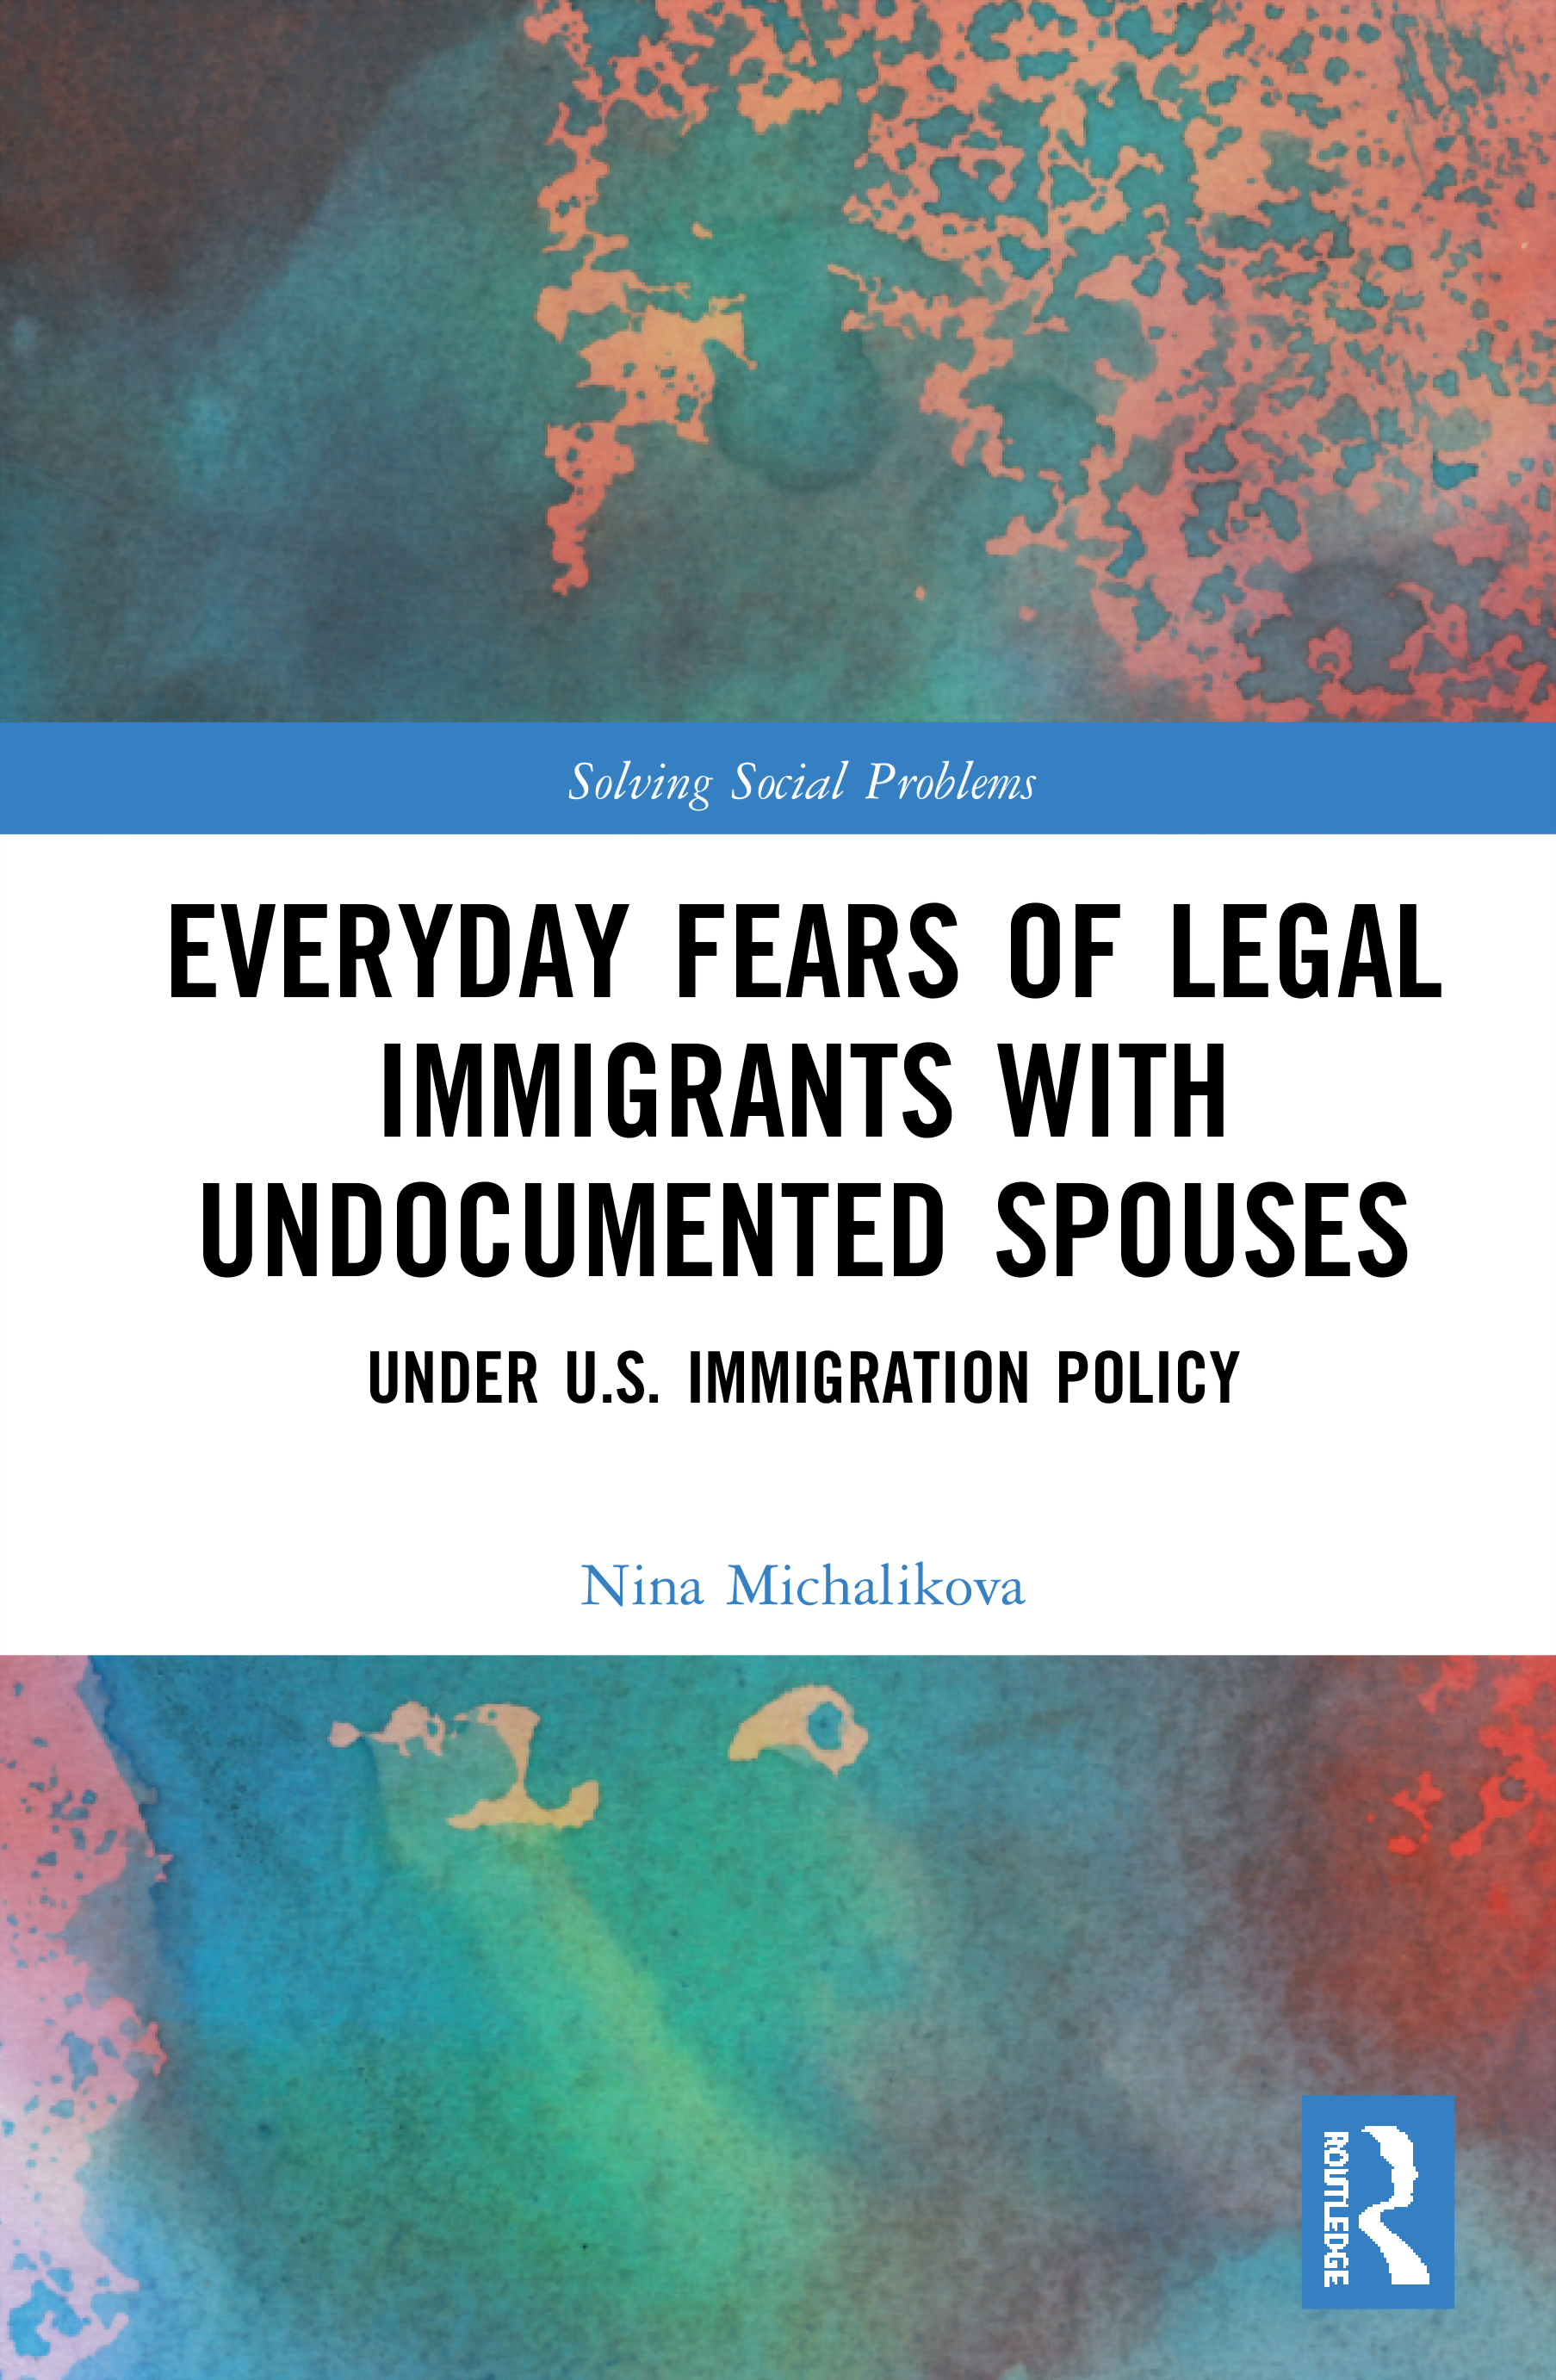 Everyday Fears of Legal Immigrants with Undocumented Spouses: Under U.S. Immigration Policy book cover